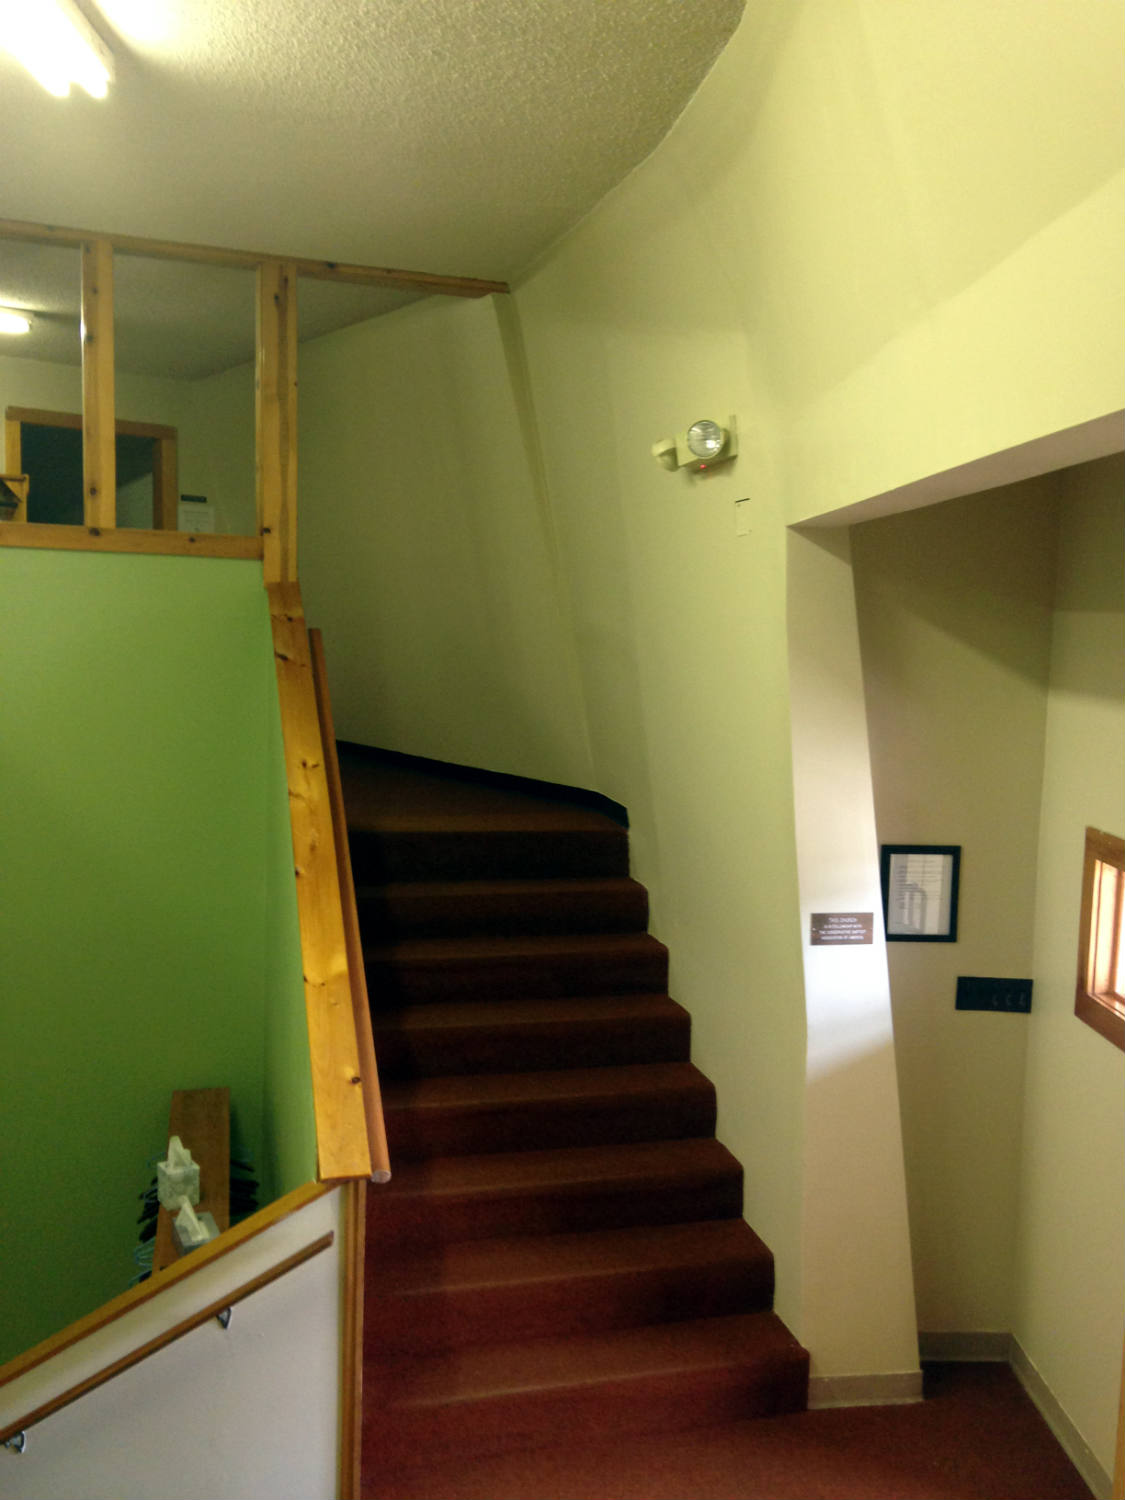 Inside Stairwell in the Calvary Baptist Church in LeRoy, NY